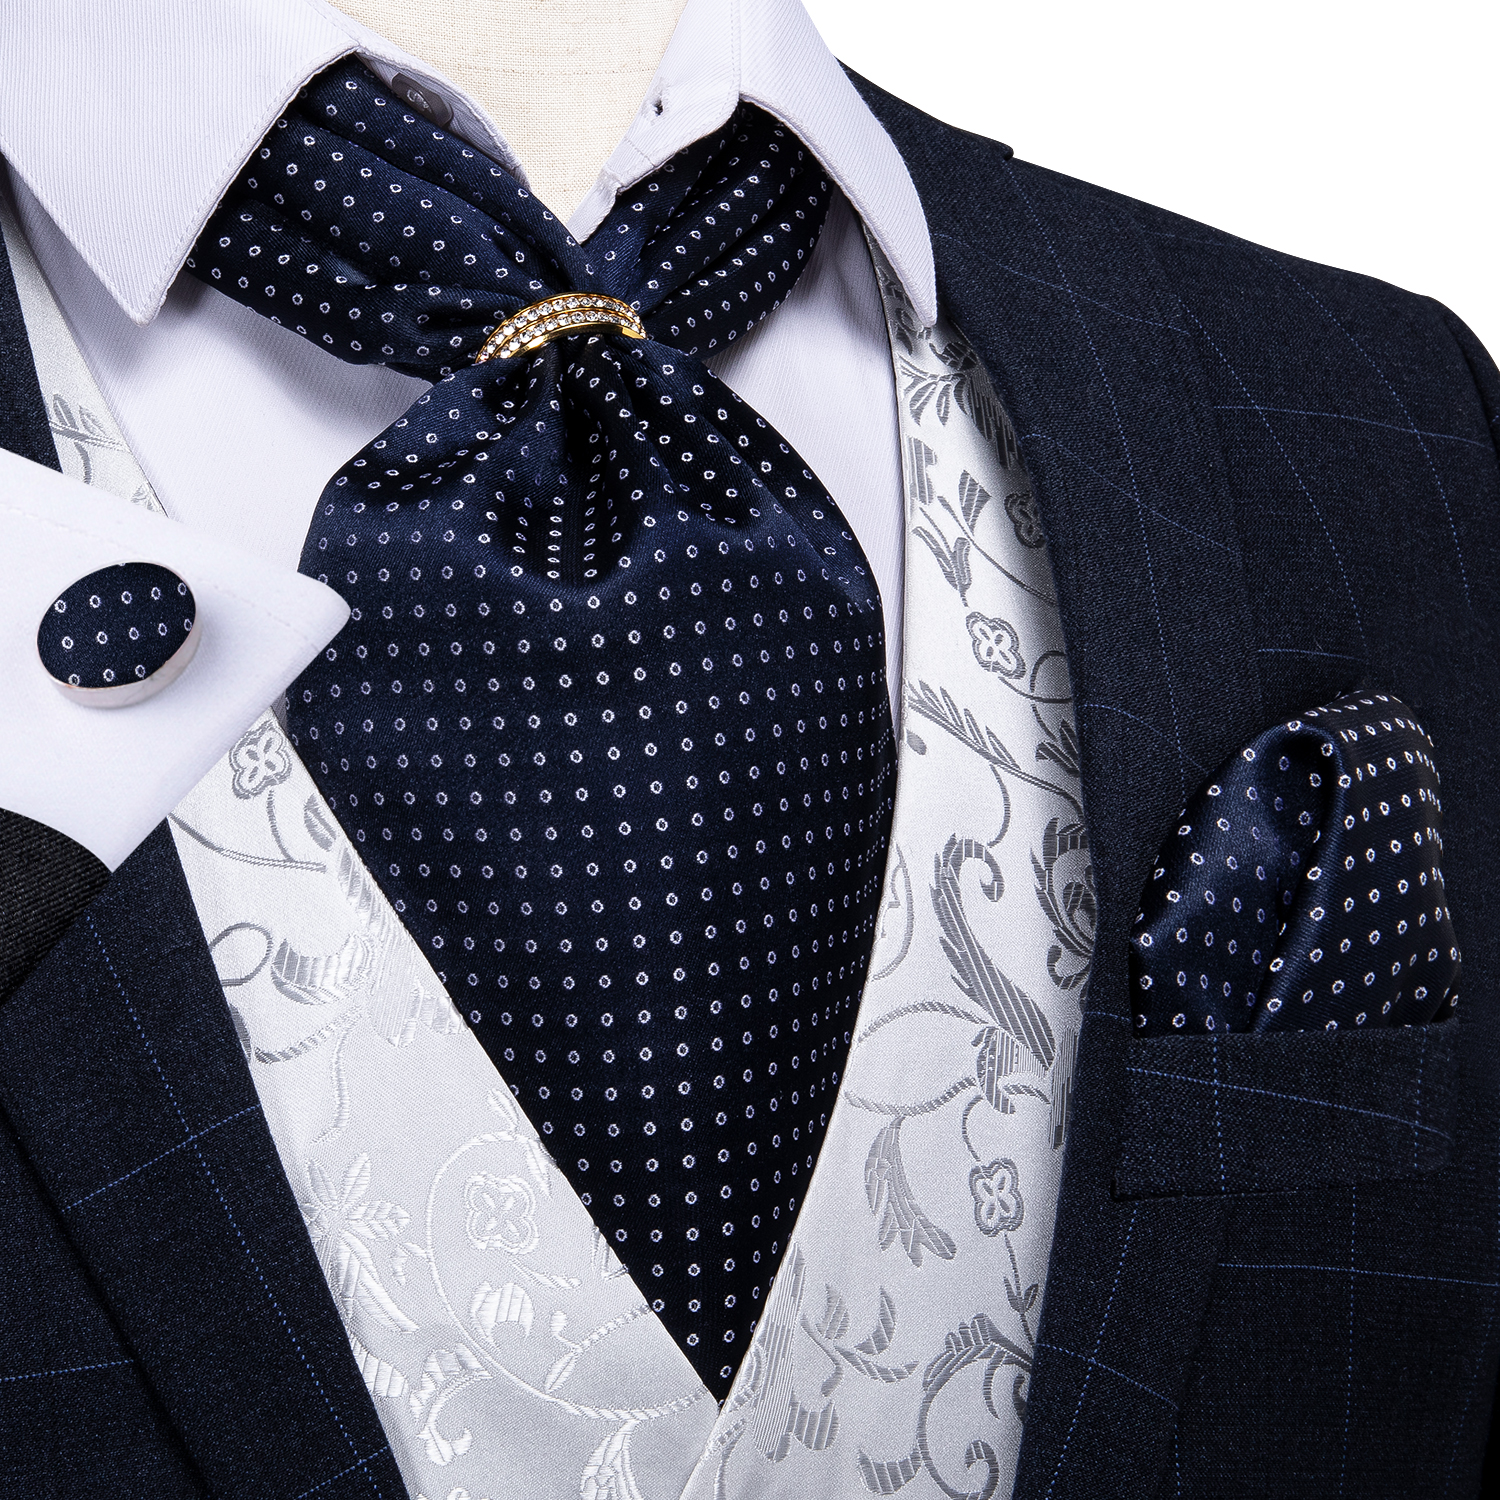 New Design Men Silk Cravat Navy Dot Formal Ascot Tie Handkerchief Set With Ring Wedding Formal Self Tie Necktie DiBanGu